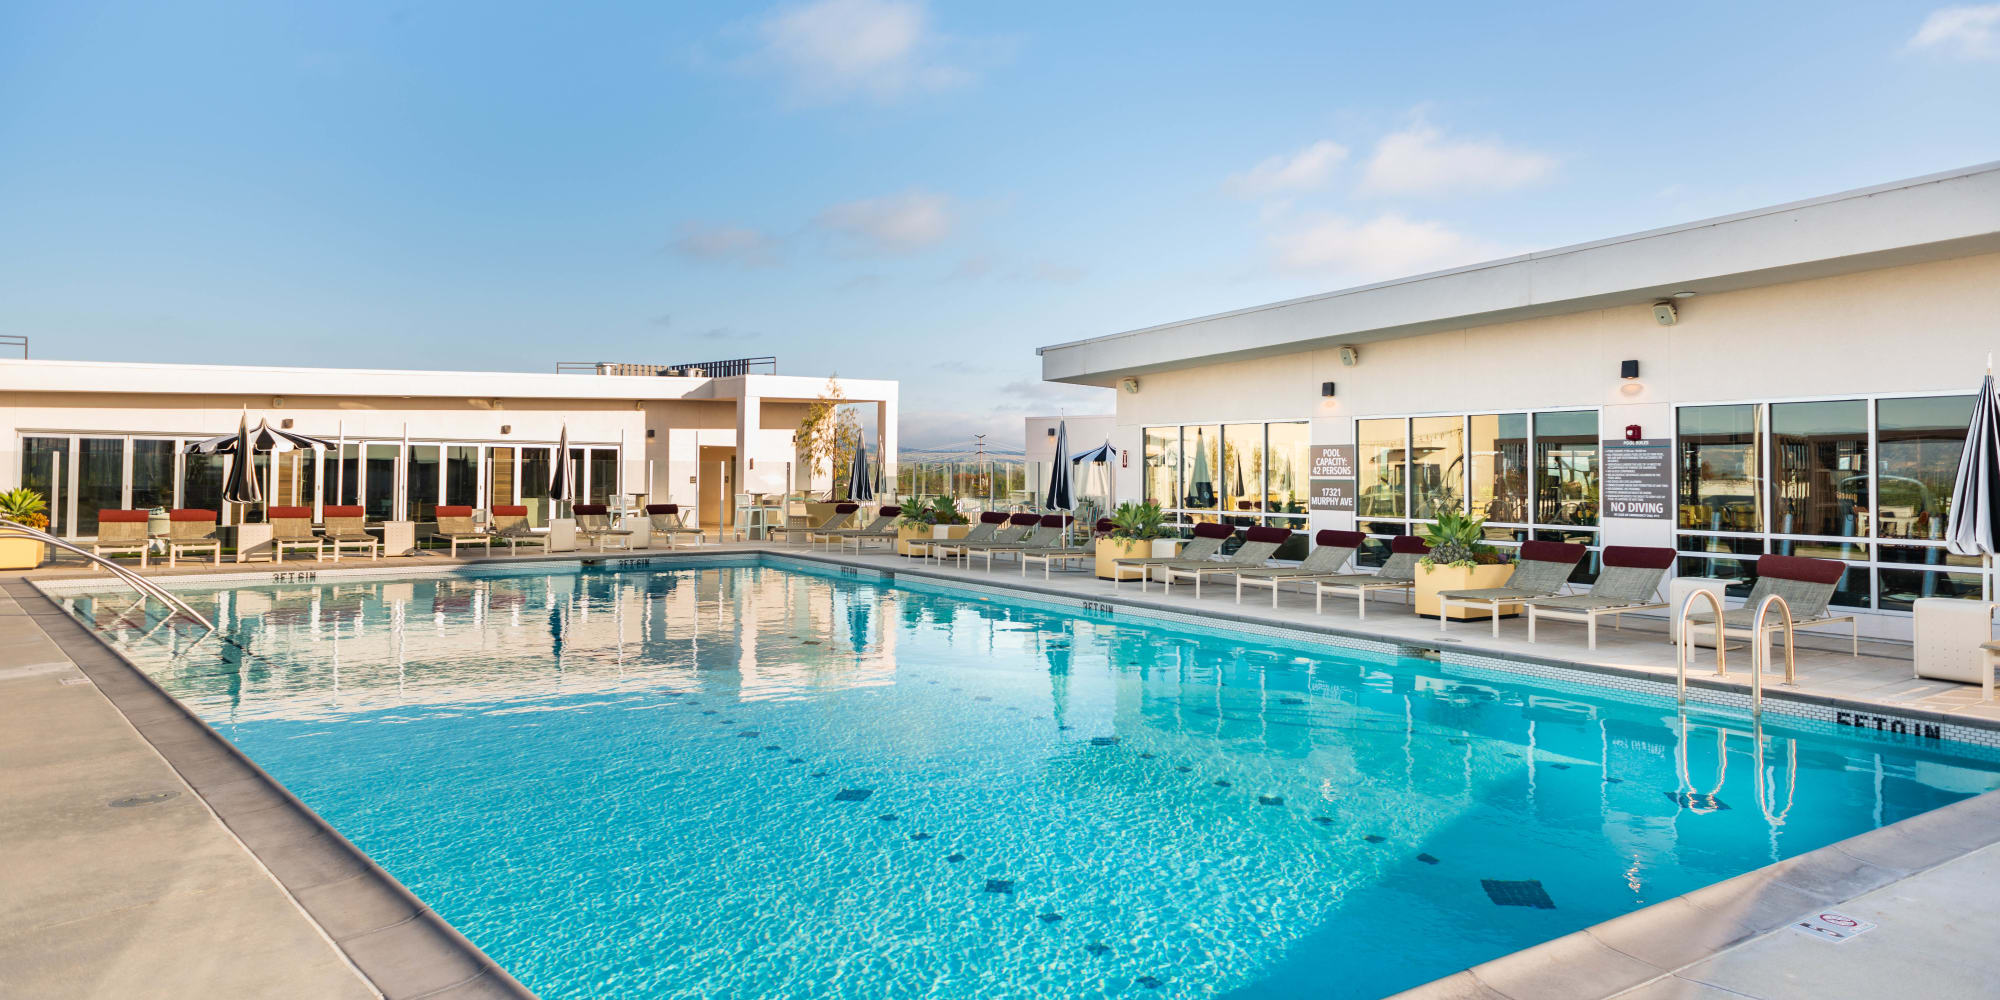 Resort-style swimming pool with underwater lap lanes at Fusion Apartments in Irvine, California